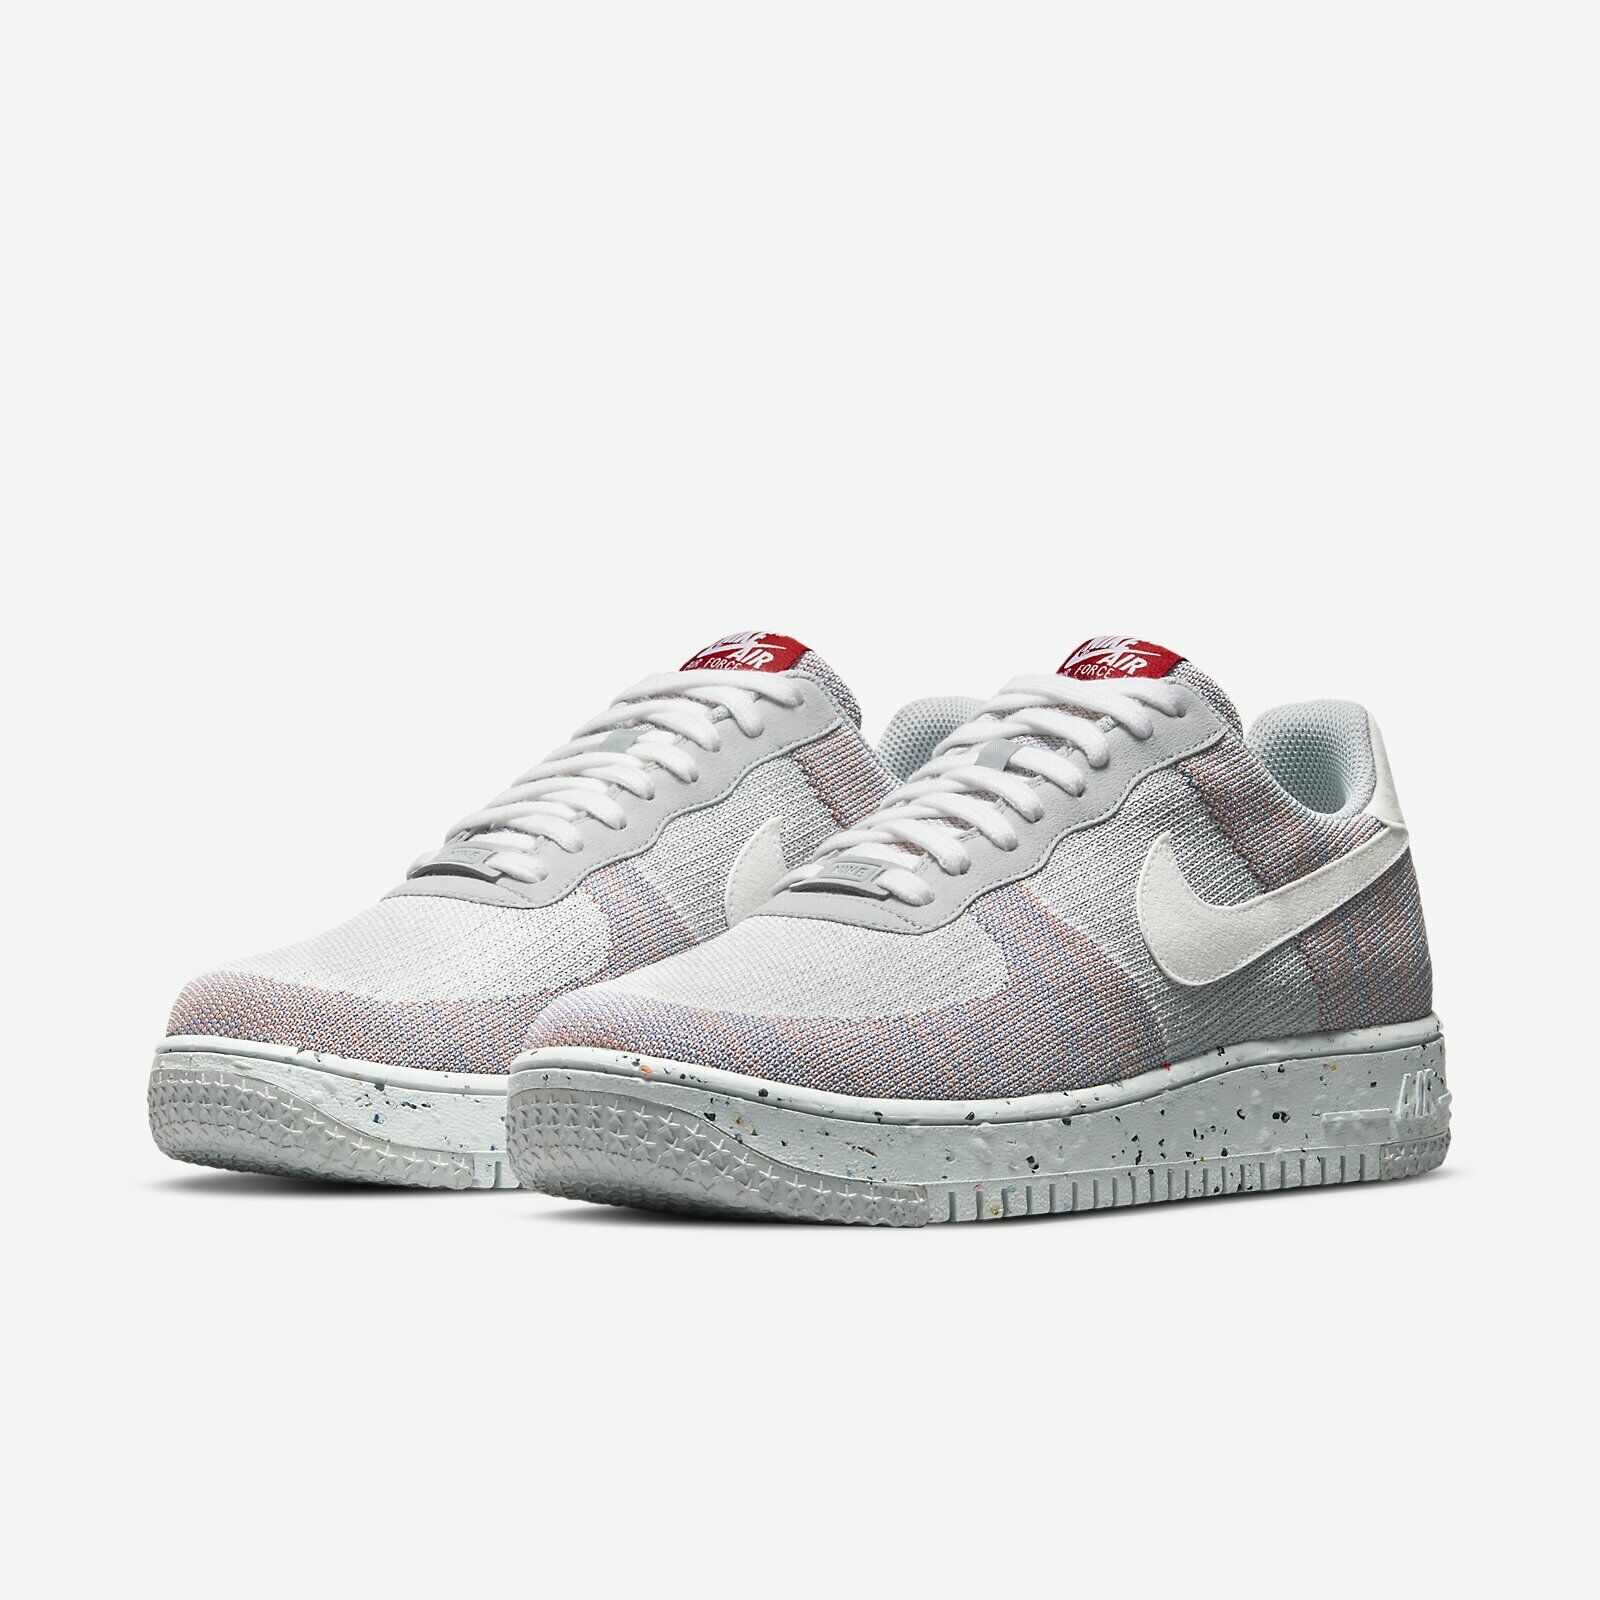 Nike AF1 Crater Flyknit Air Force 1 Wolf Grey White Red Men Casual DC4831-002